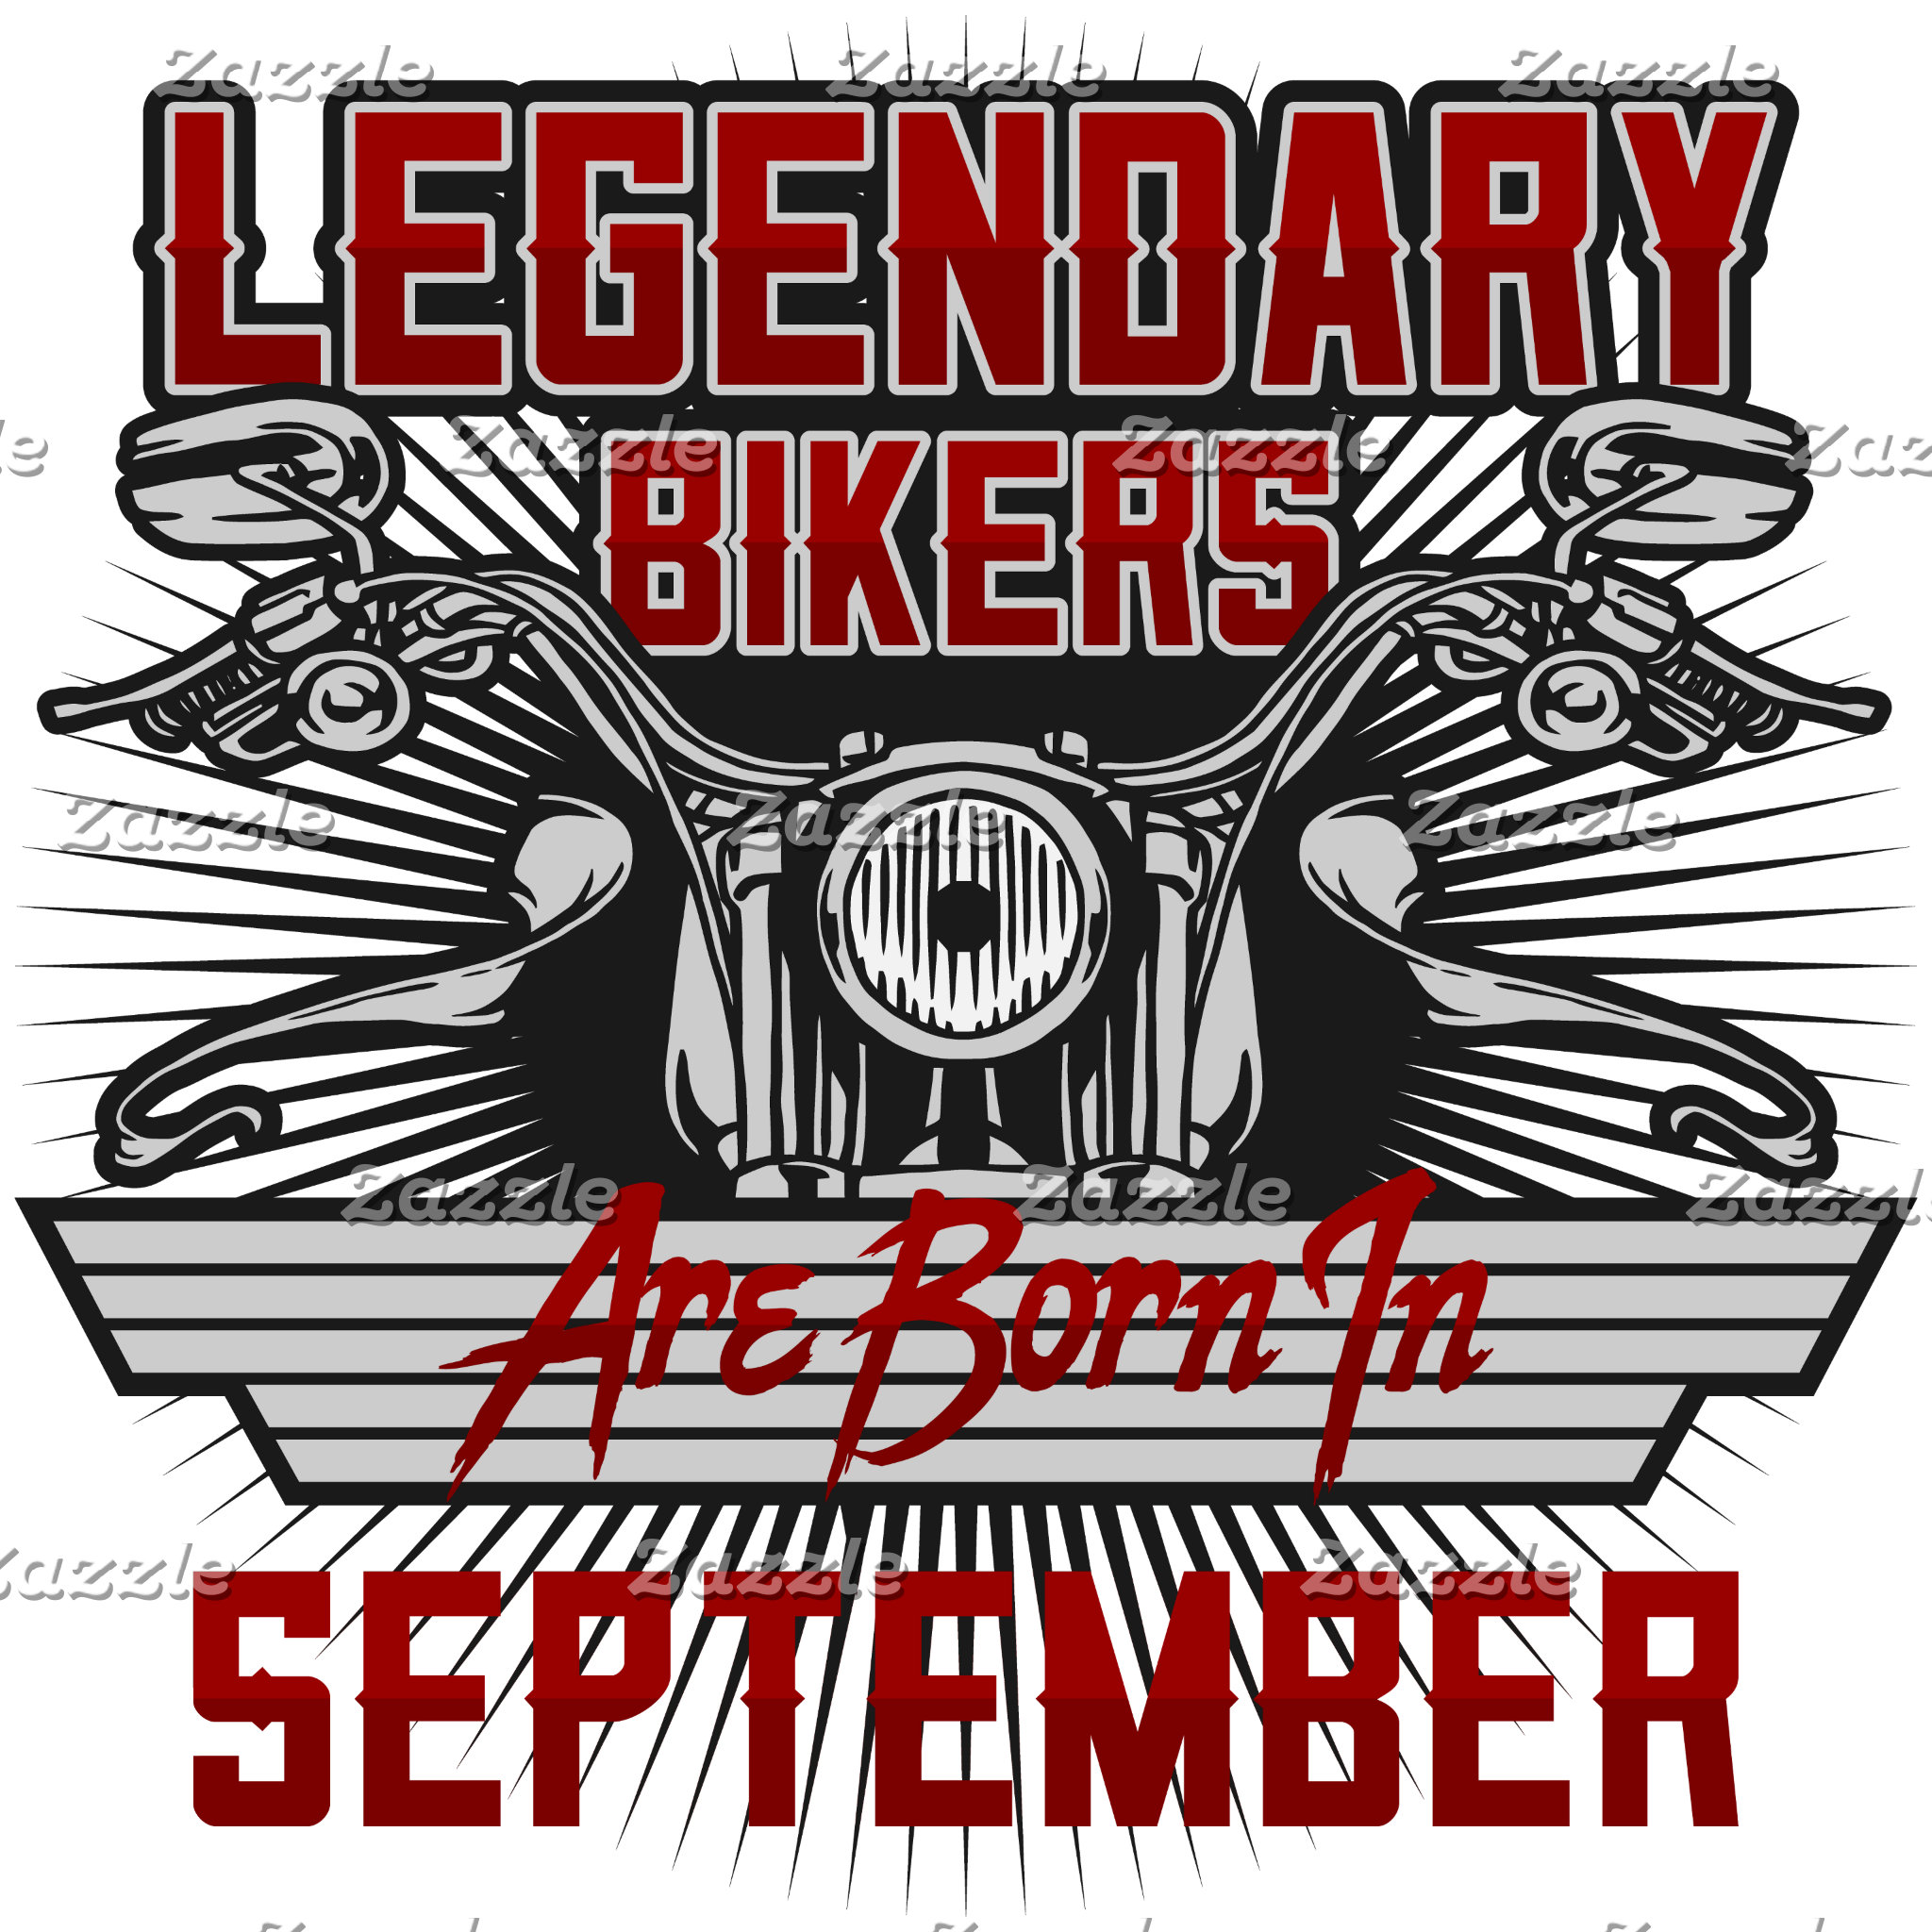 Legendary Bikers